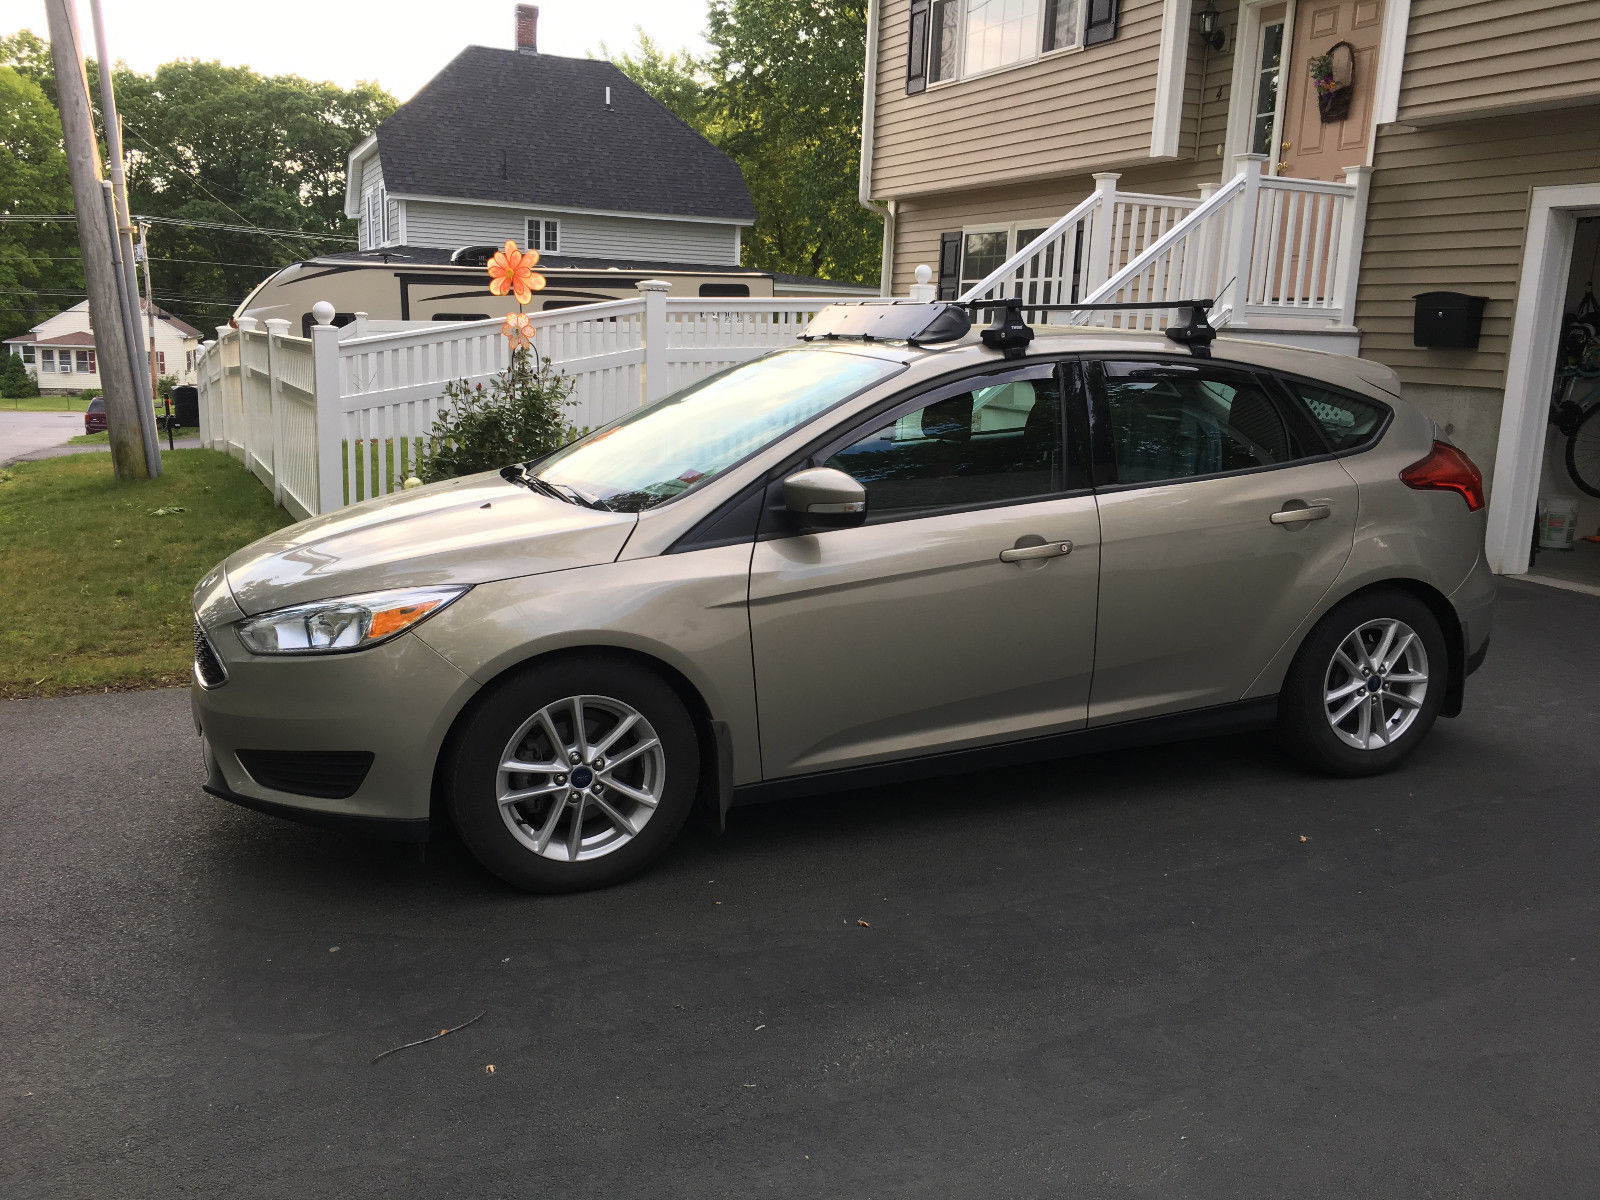 Used 2015 Ford Focus Se 2015 Ford Focus Se Hatchback 1l W 6 Speed Manual 2017 2018 Is In Stock And For Sale Mycarboard Com